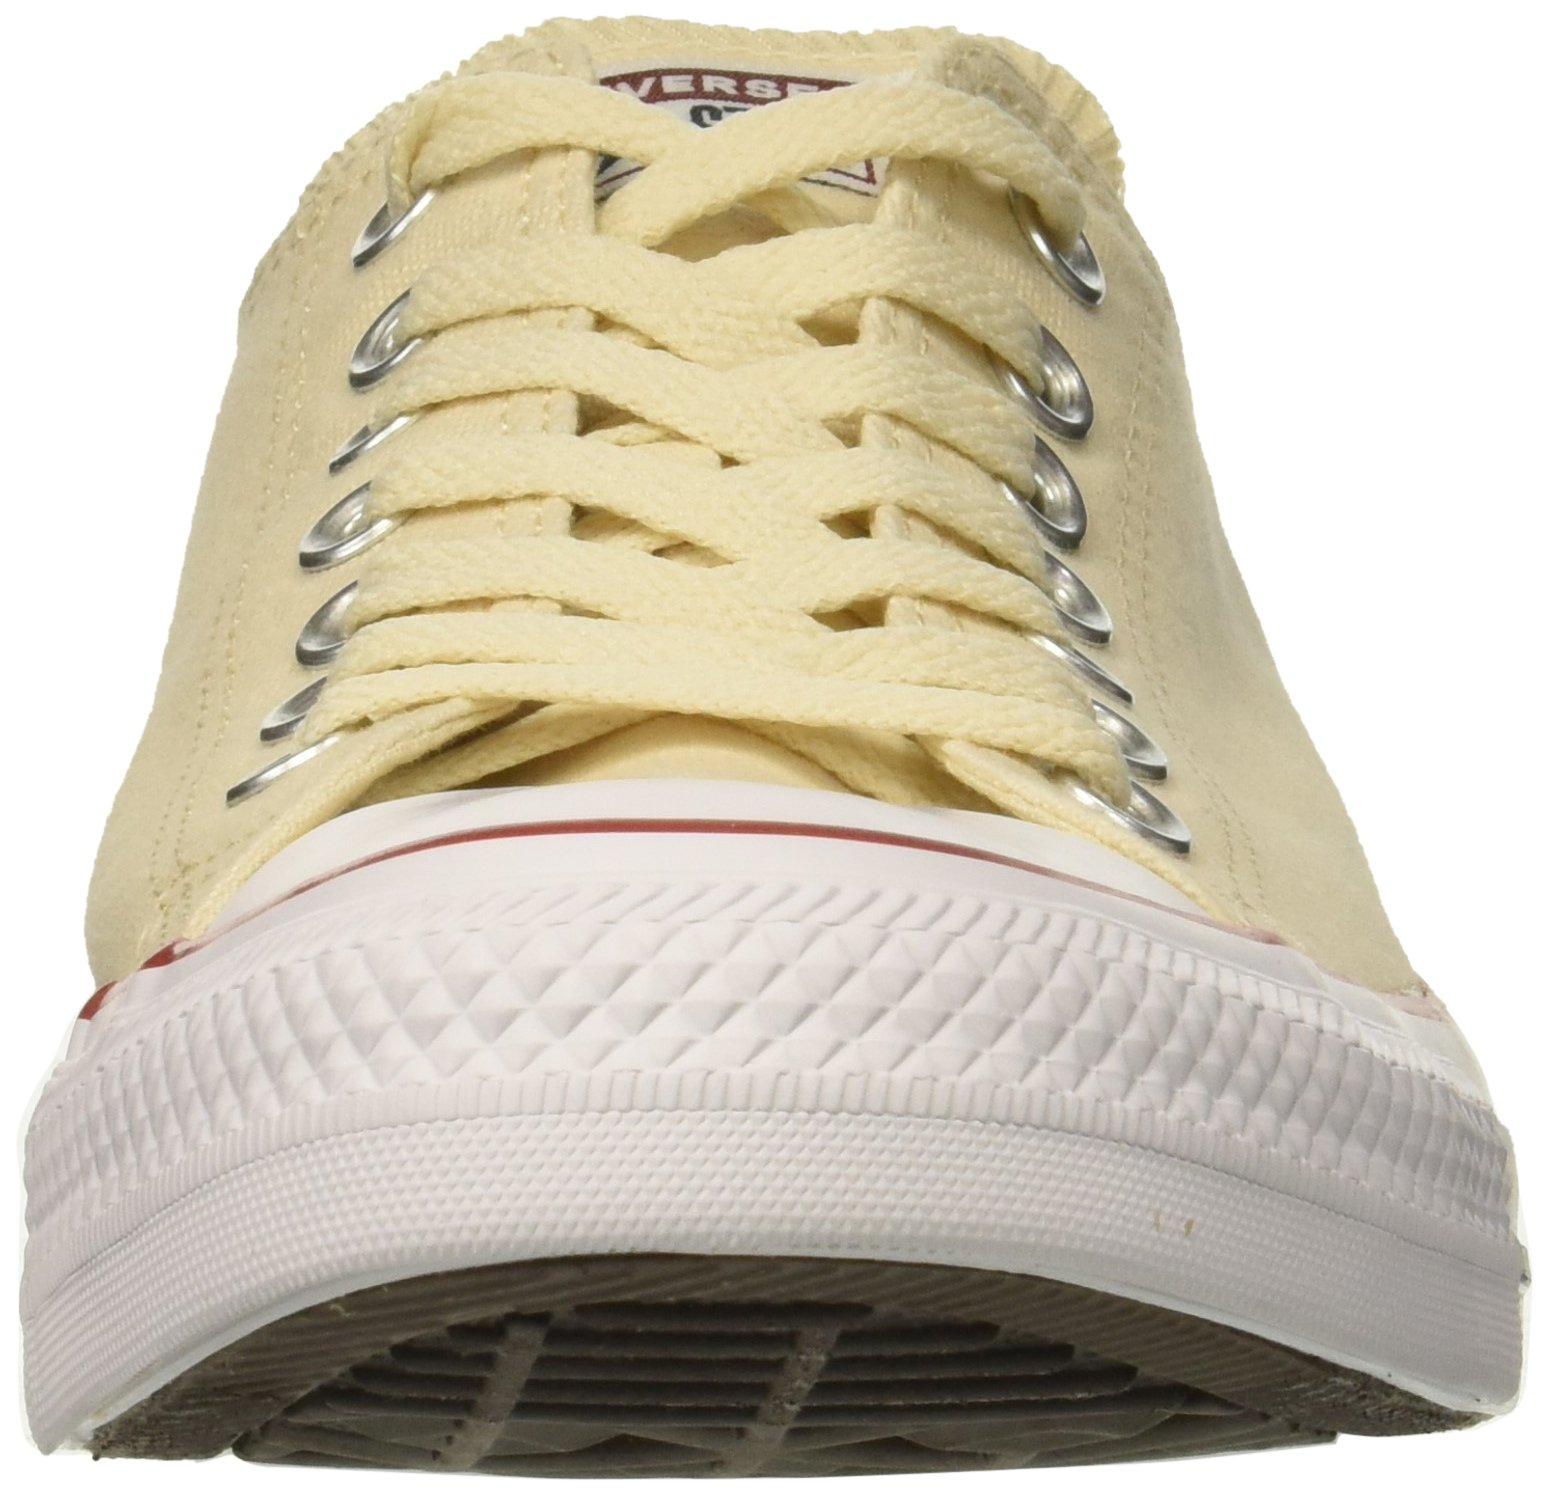 Converse Chuck Taylor All Star Low Top Sneaker, Natural Ivory, 11 M US by Converse (Image #4)